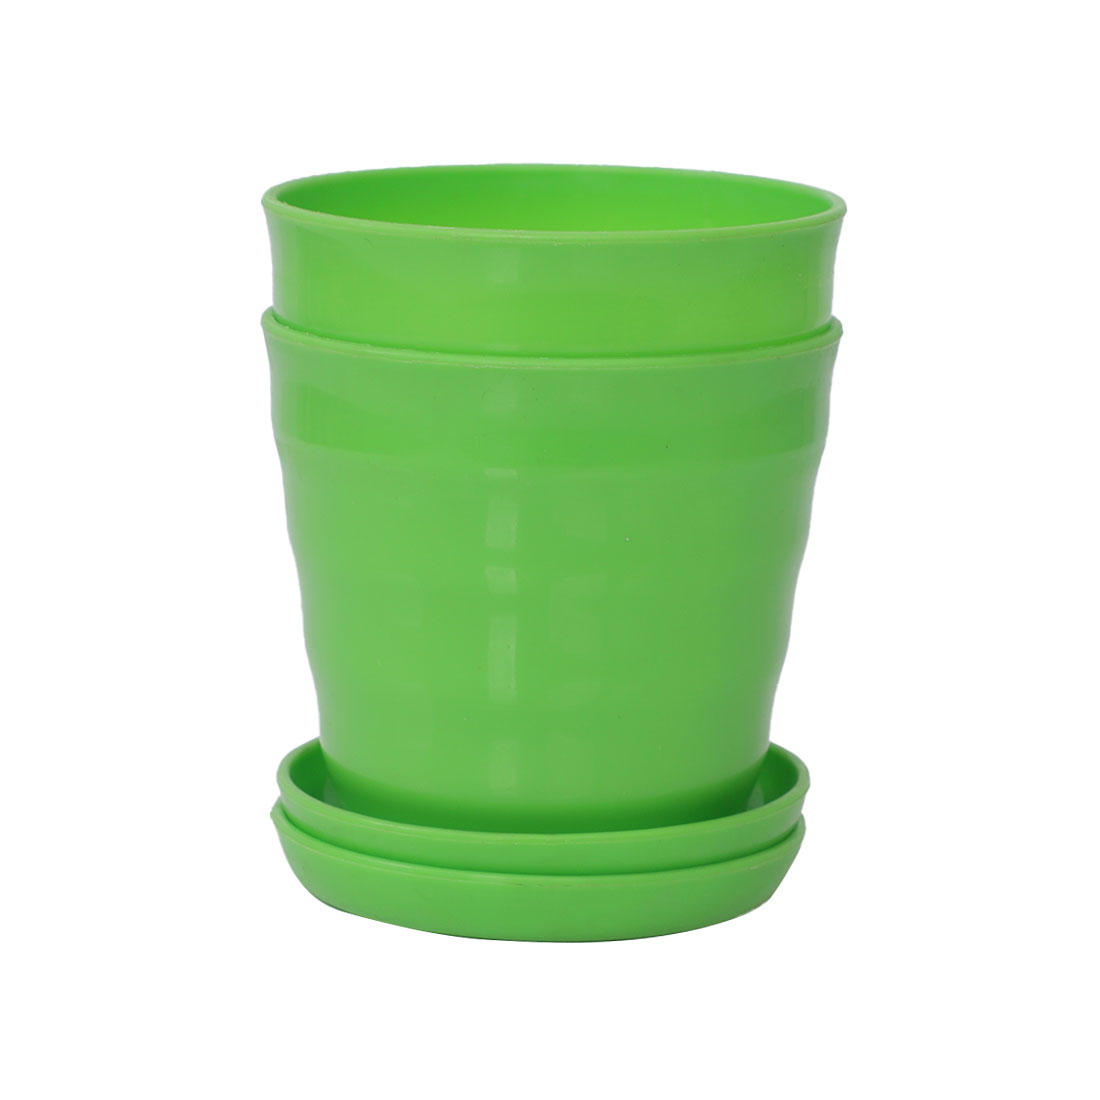 Apartment Desktop Plastic Round Cactus Plant Flower Seed Pot Tray Holder Green 2pcs